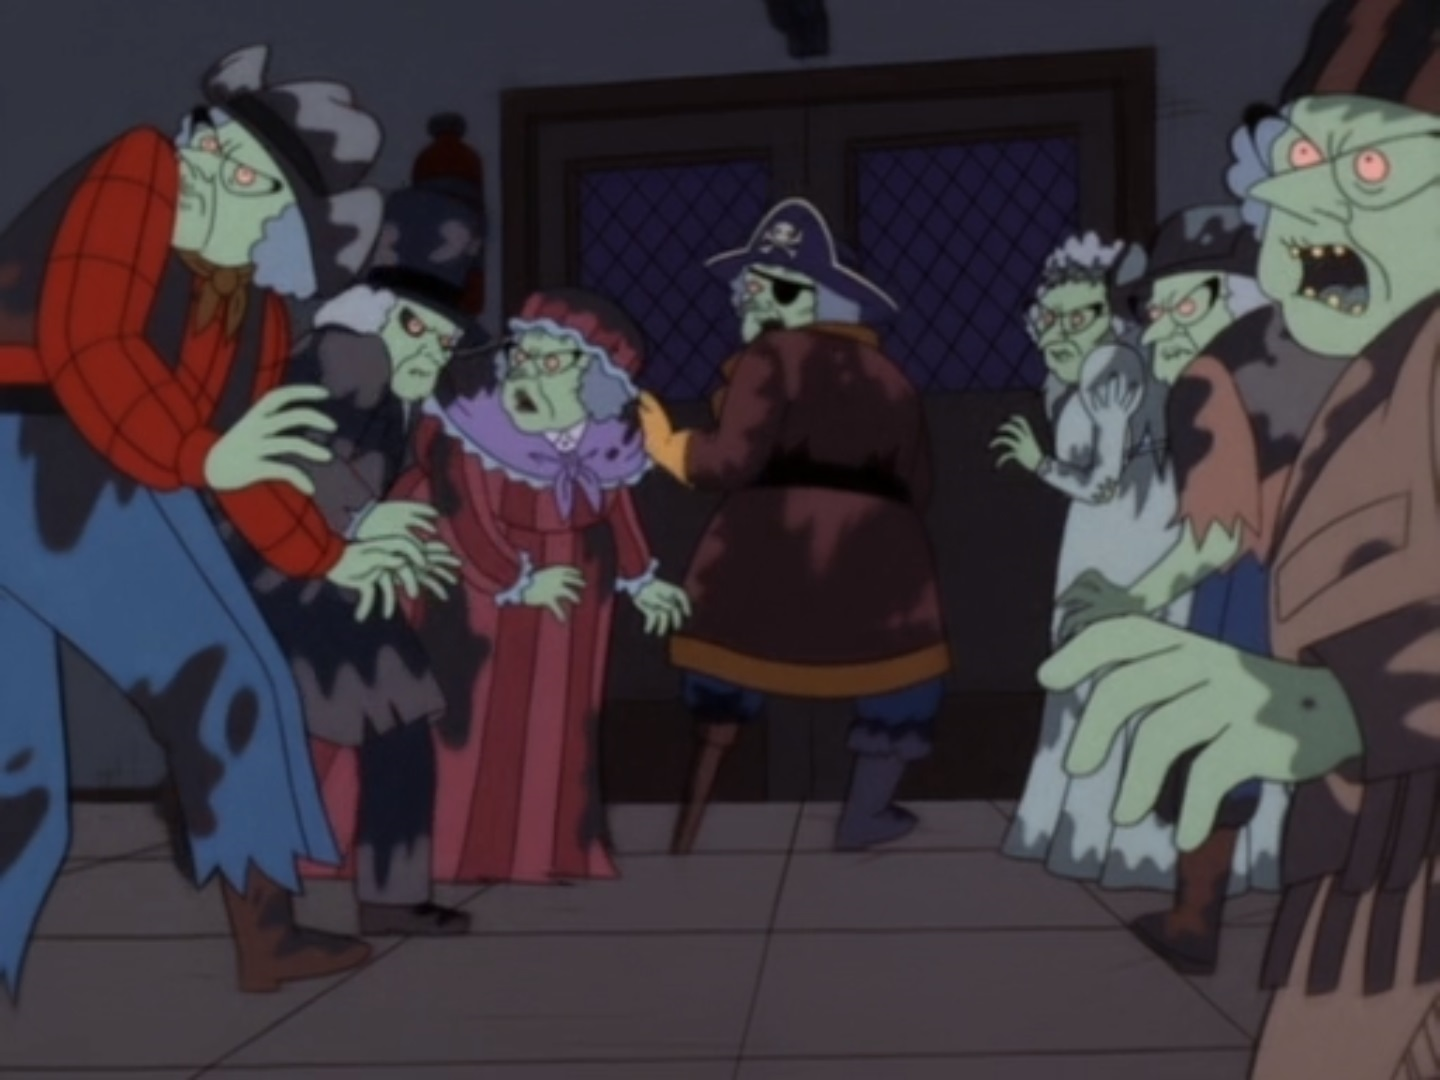 All-Zombie-Finsters-recess-33012224-120-90